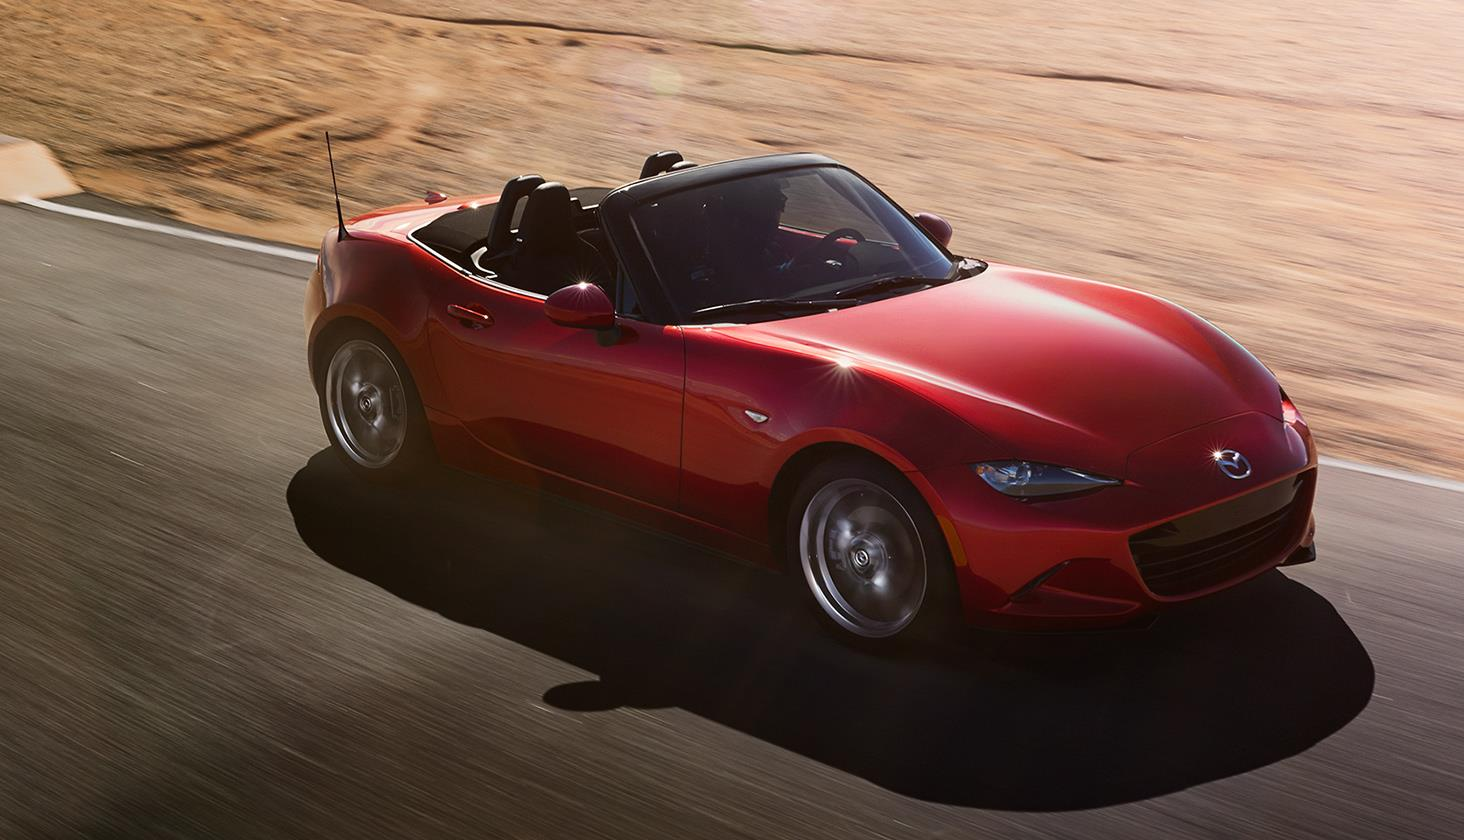 New 2017 Mazda MX-5 Miata in Cicero New York